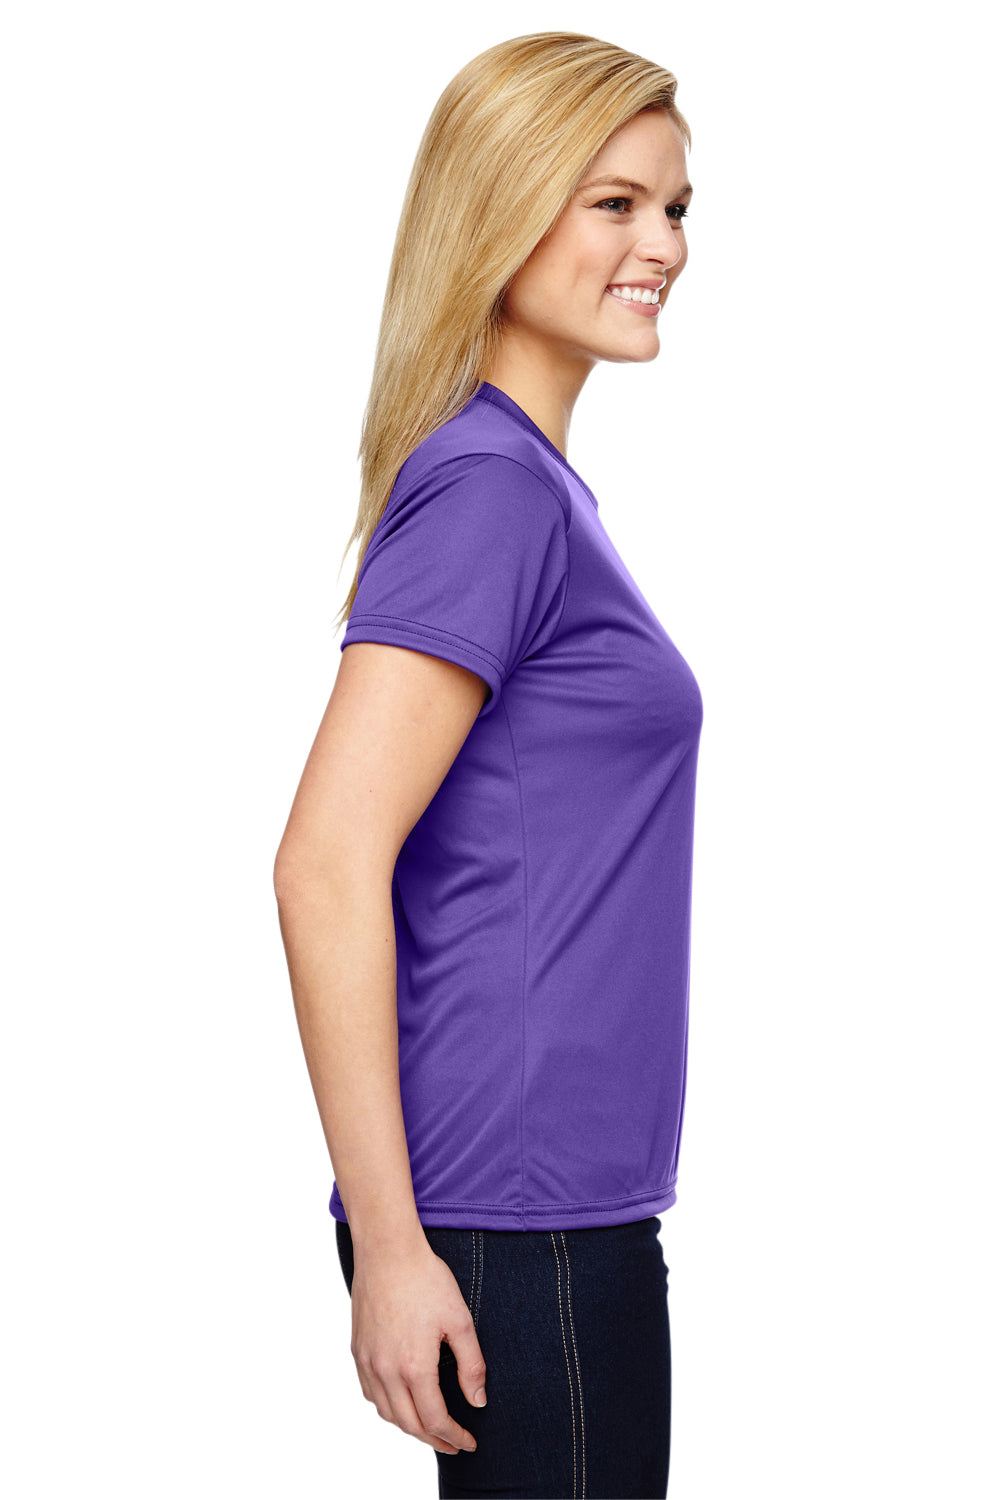 A4 NW3201 Womens Cooling Performance Moisture Wicking Short Sleeve Crewneck T-Shirt Purple Side